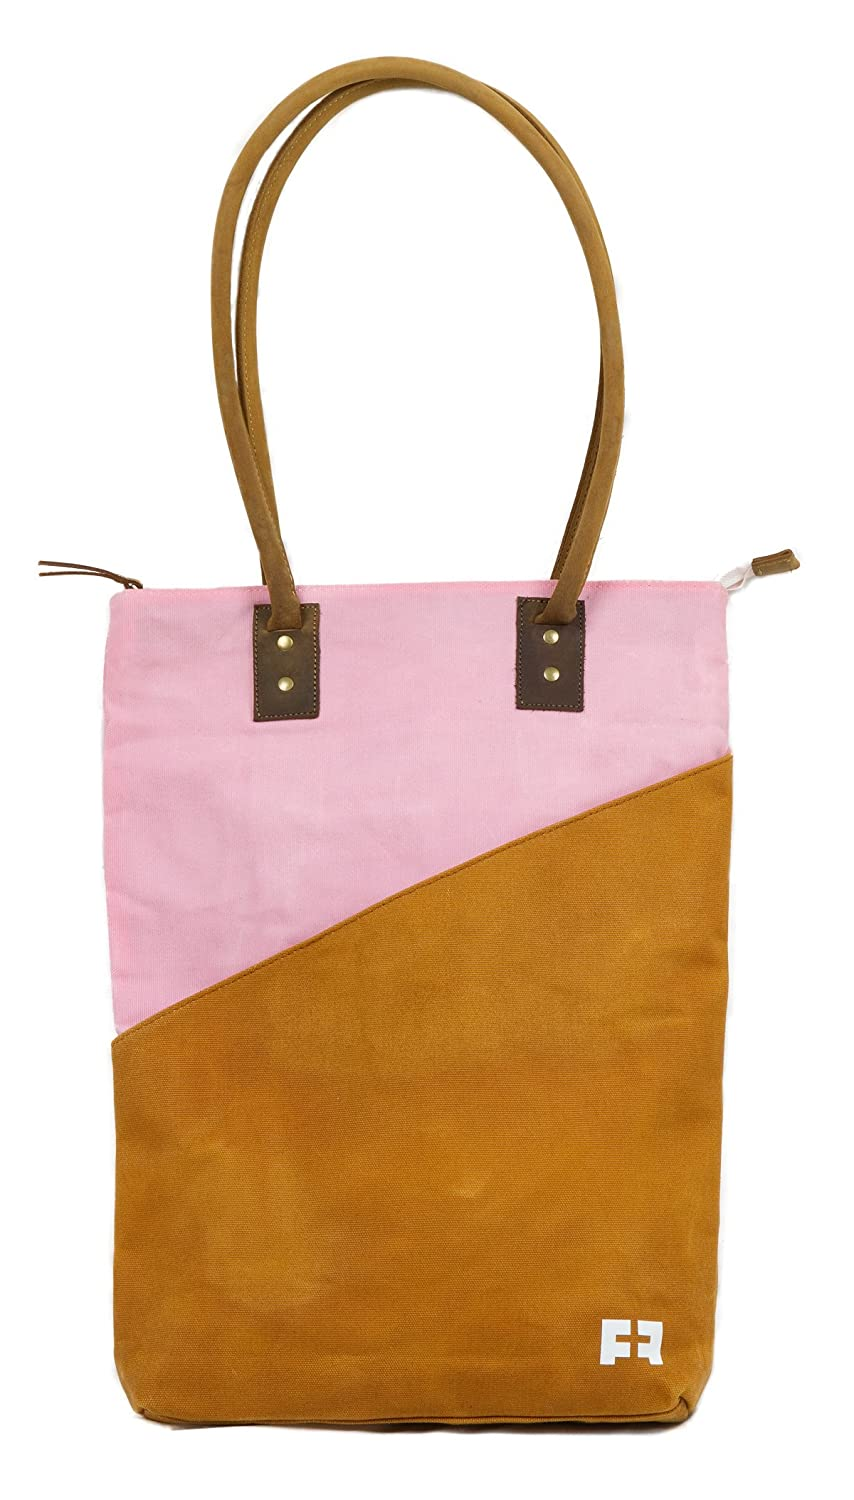 b0157ba880c Large Waxed Canvas Tote Bag: Zippered Shoulder Purse with Genuine Leather  Straps